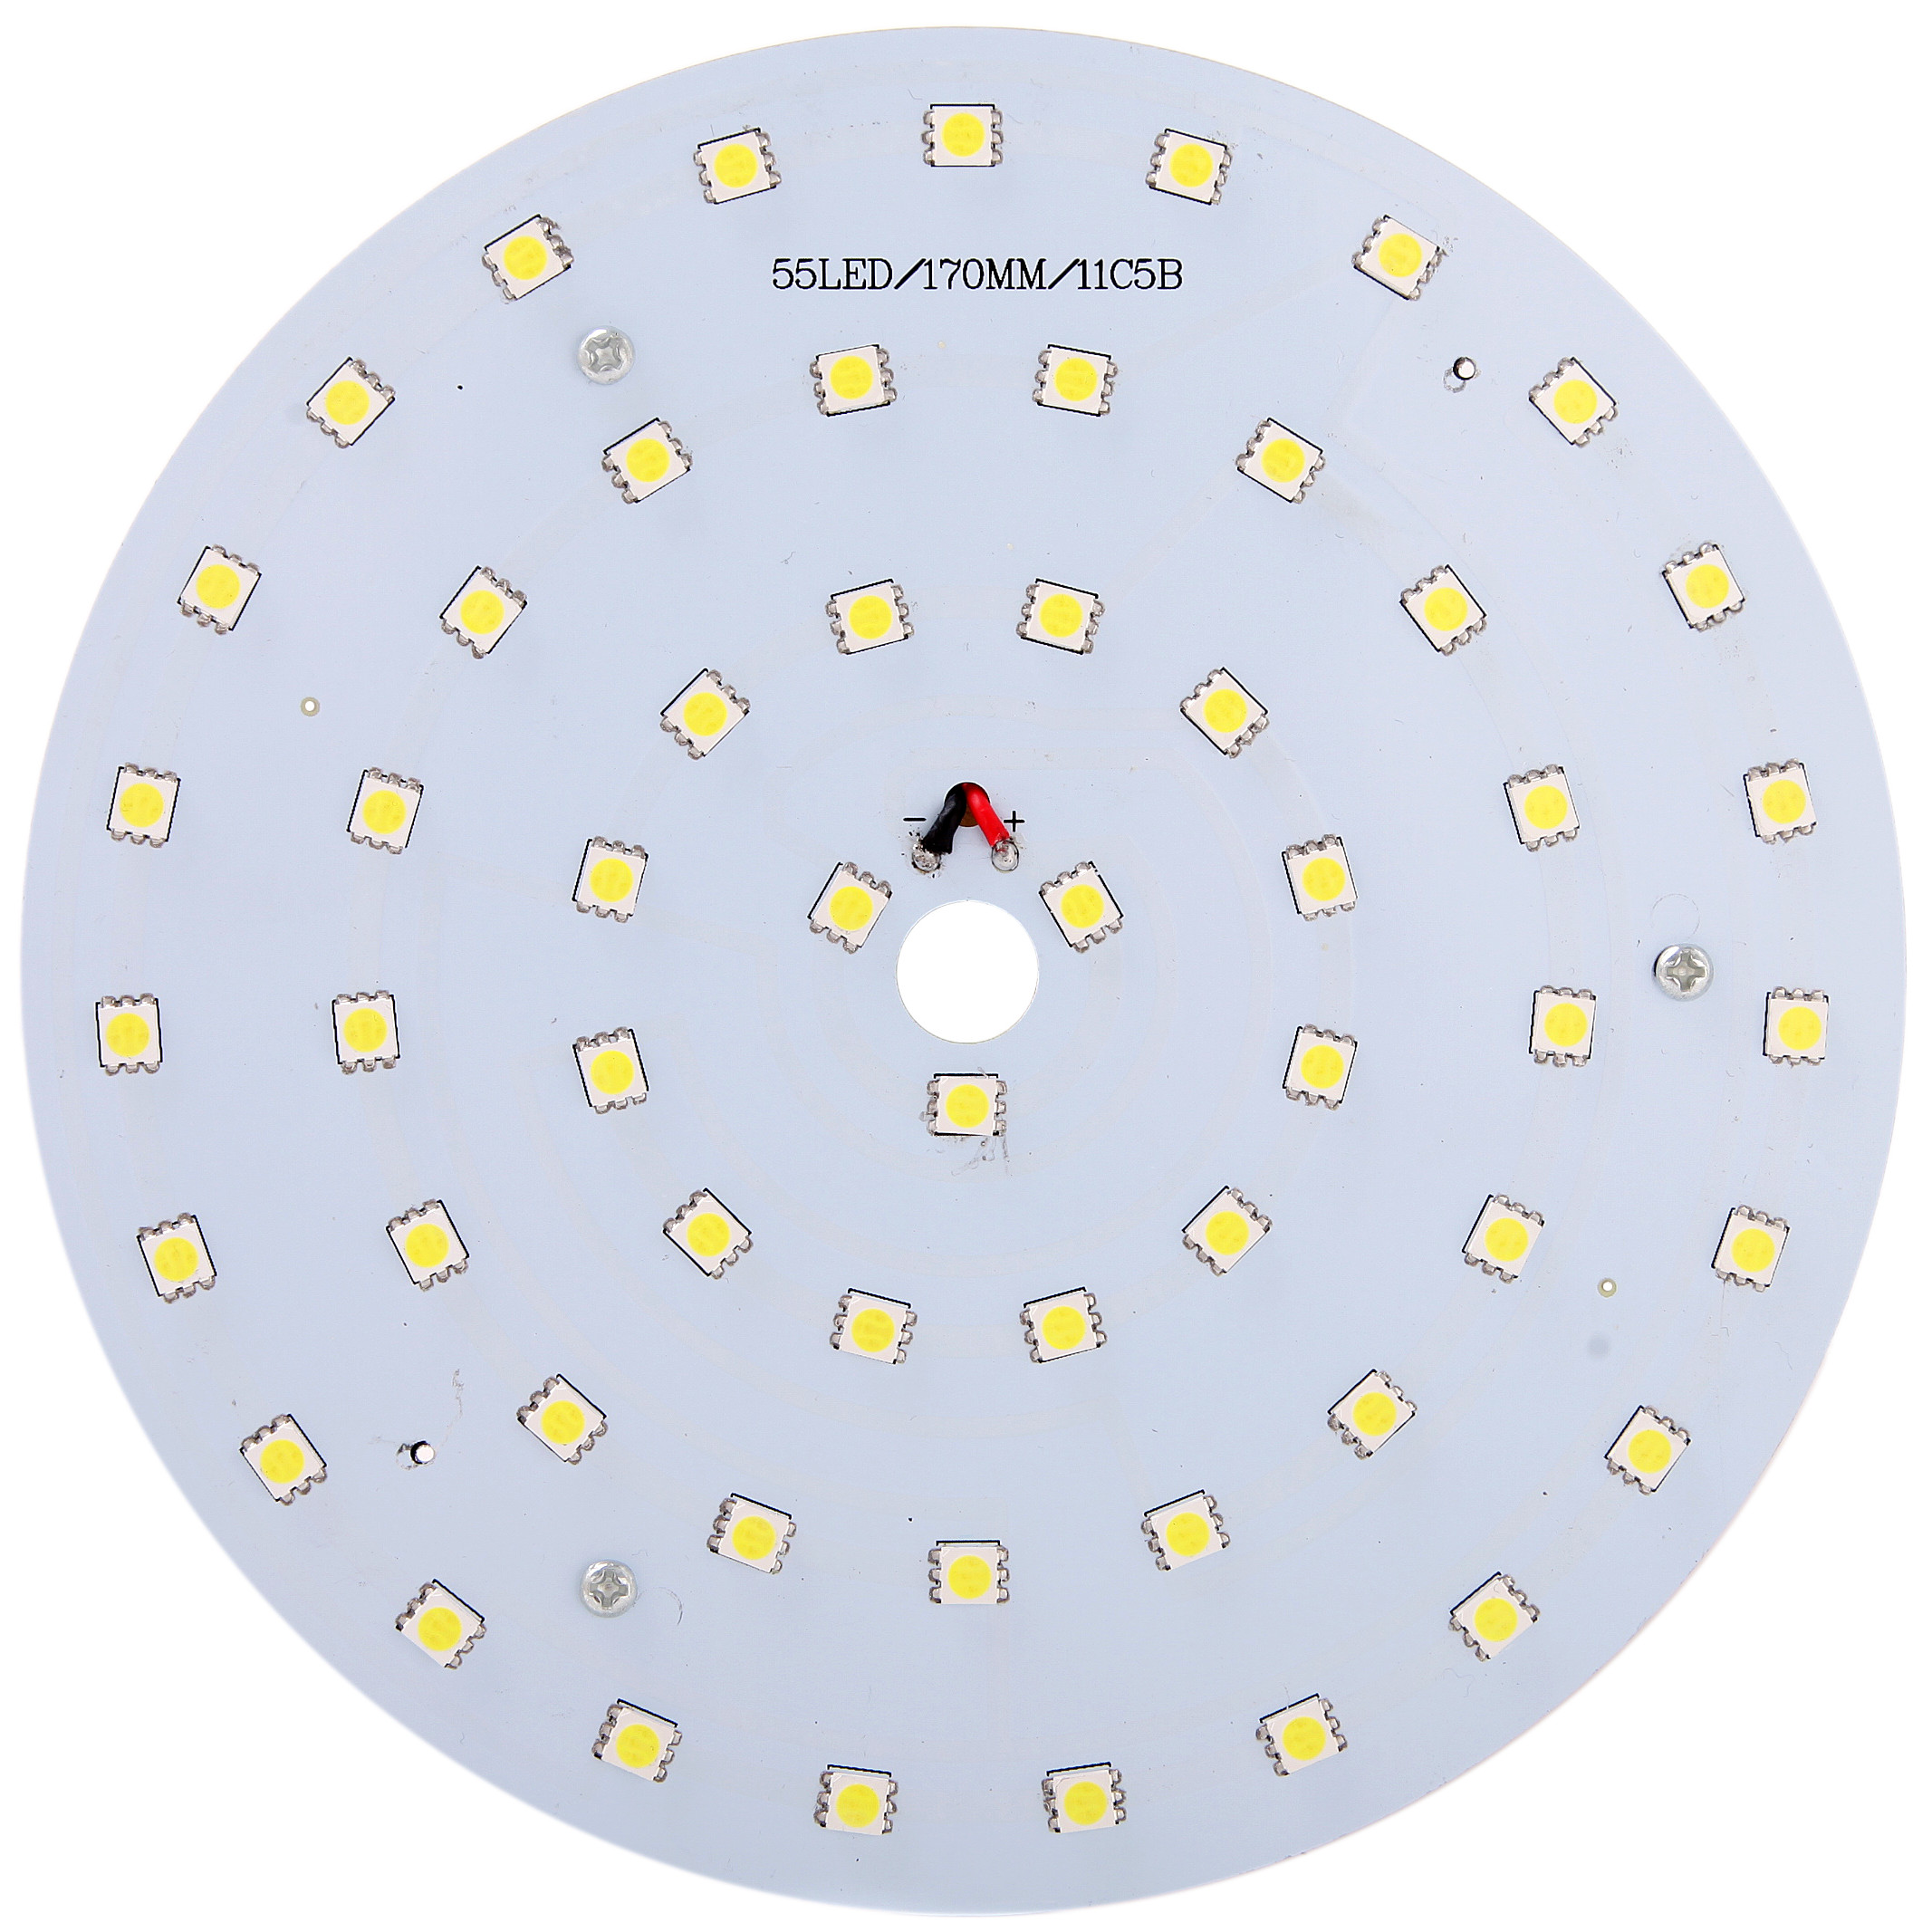 Bright aluminum plate 12 tile led ceiling light transformation plate led energy saving lamp plate constant current power supply(China (Mainland))